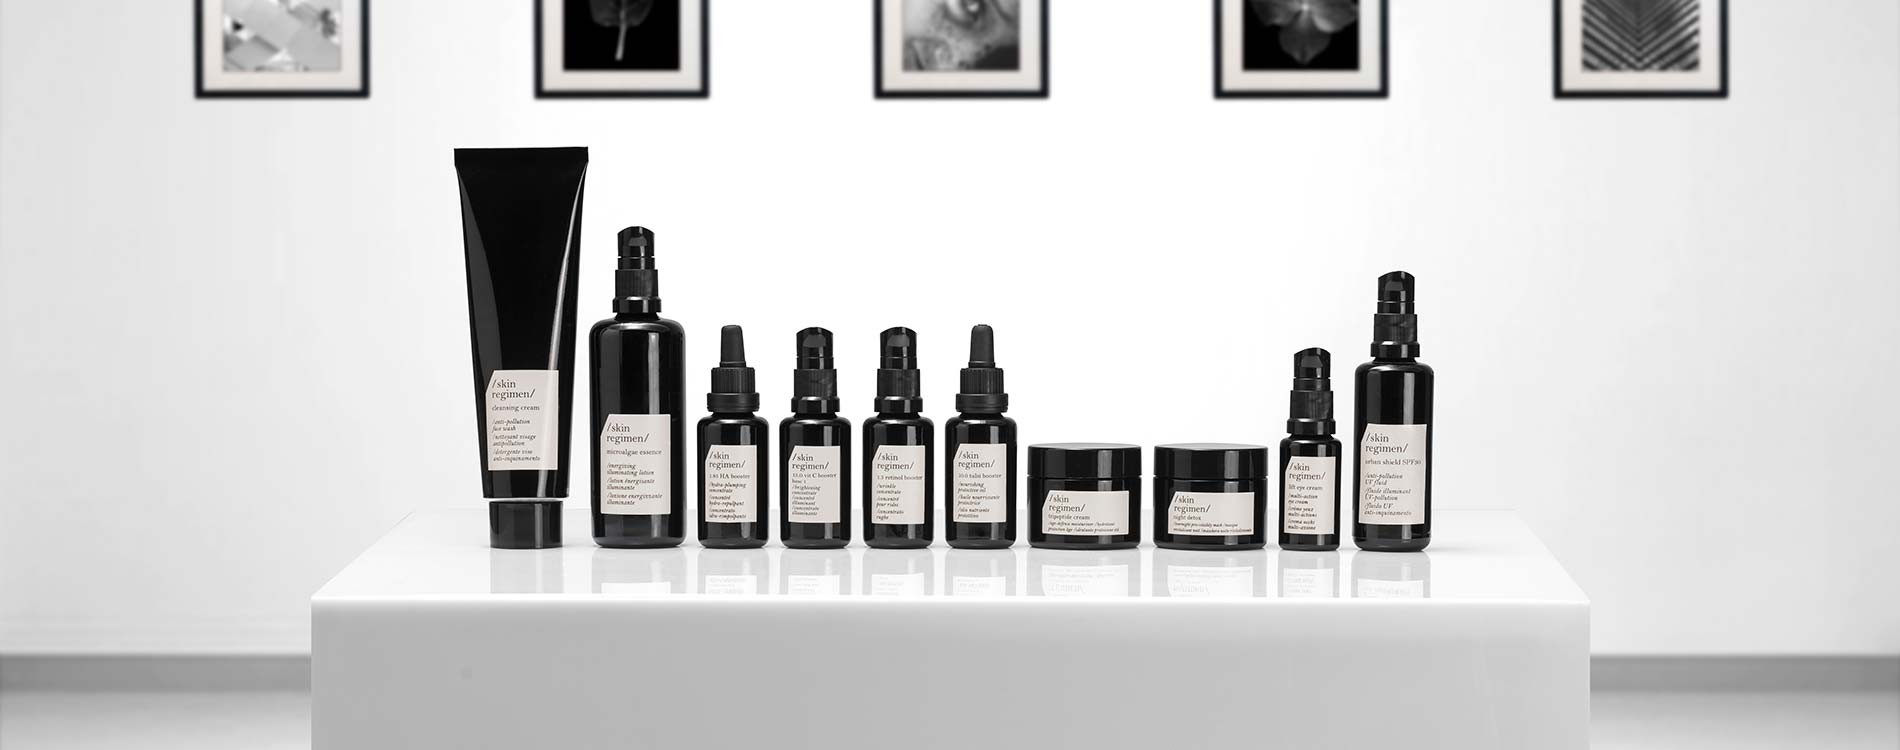 SKIN REGIMEN PRODUCT FAMILY pro spa Kosmetik Shop